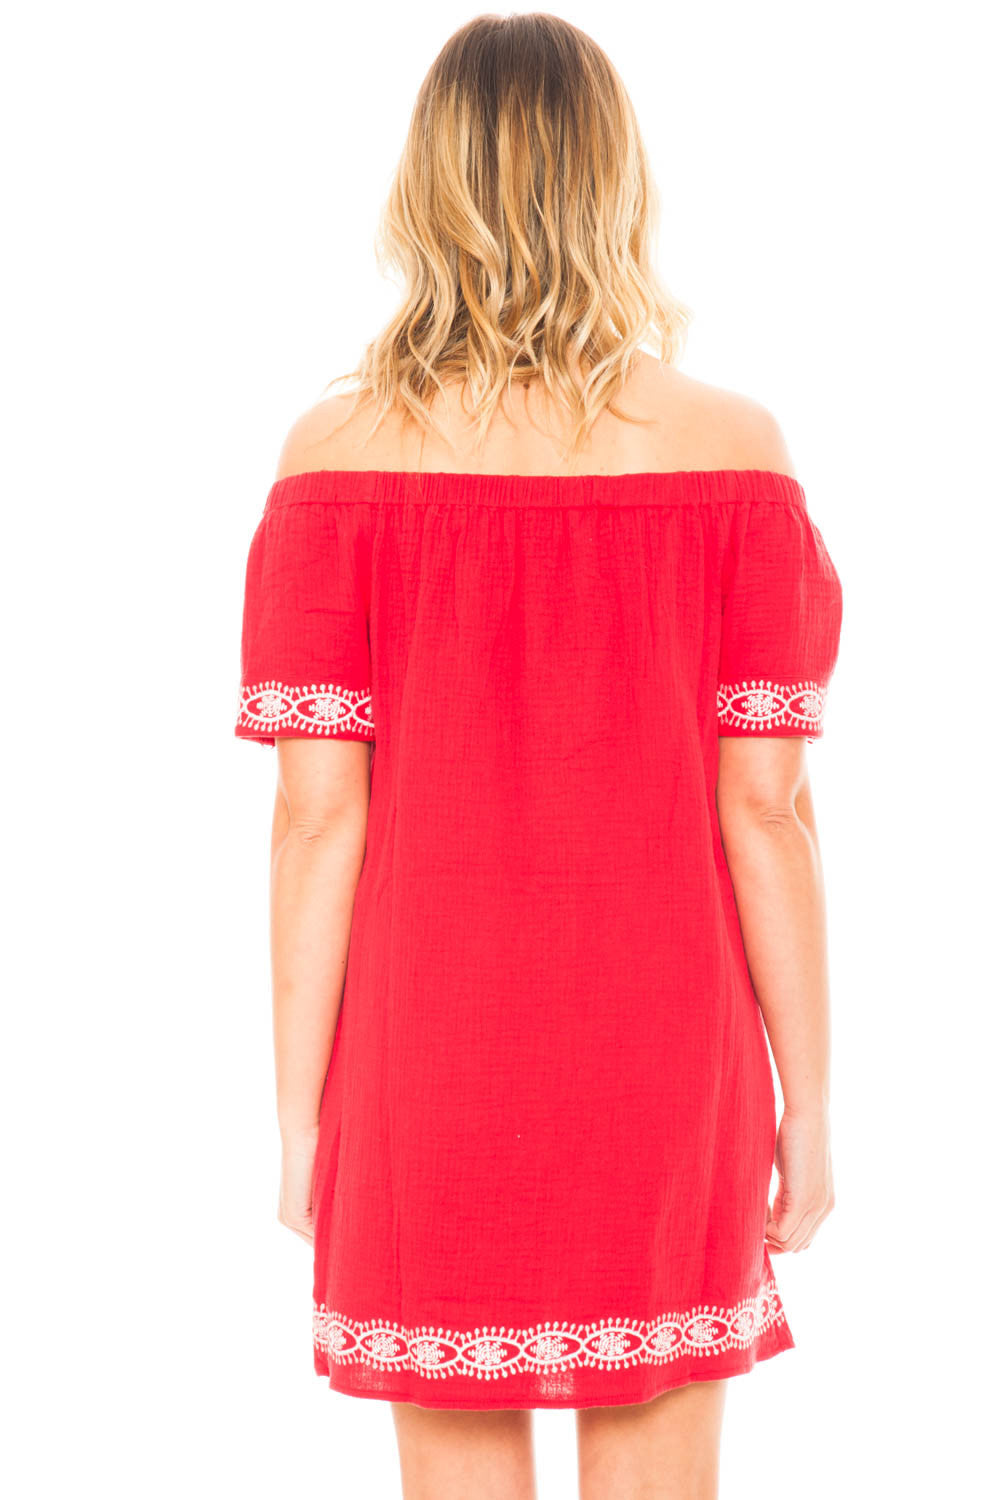 Dress - Off Shoulder Embroidered Dress